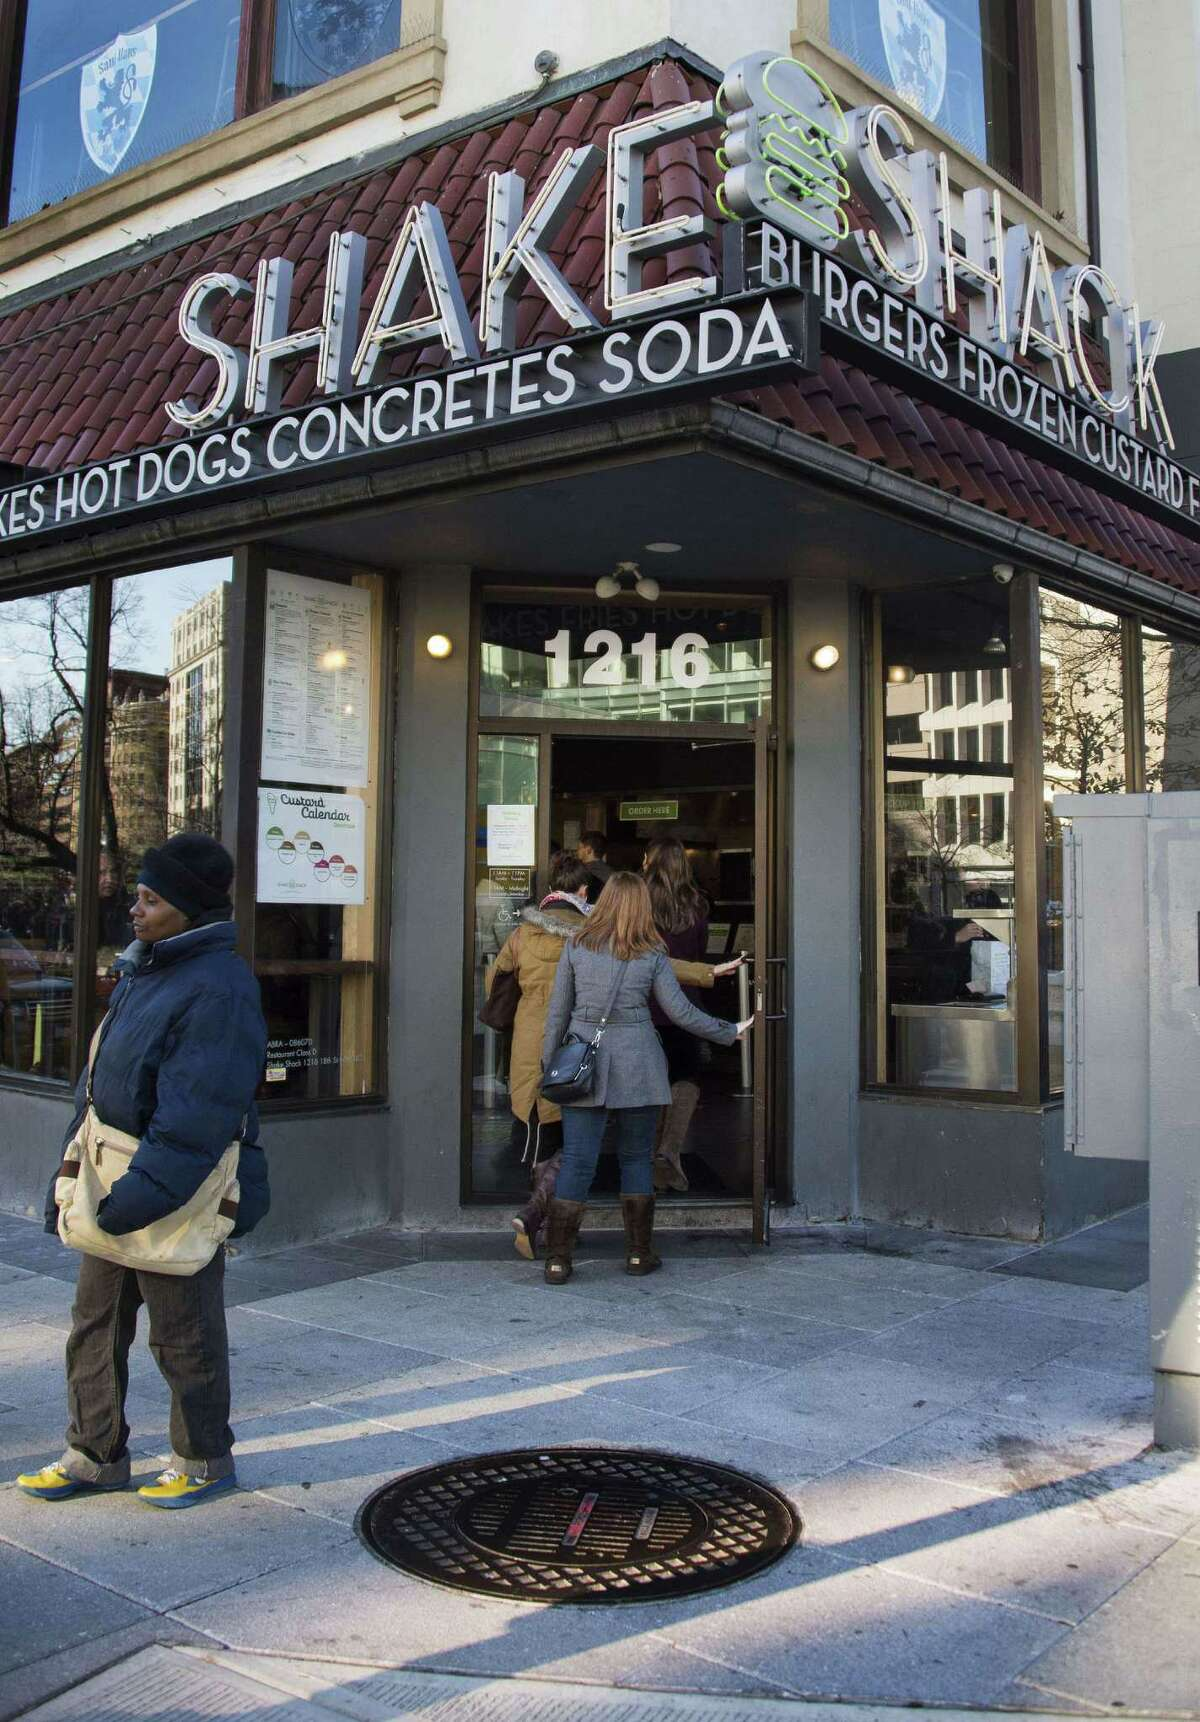 This Shake Shack is in Washington, D.C. The chain said Thursday it raised $105 million in its initial public offering.